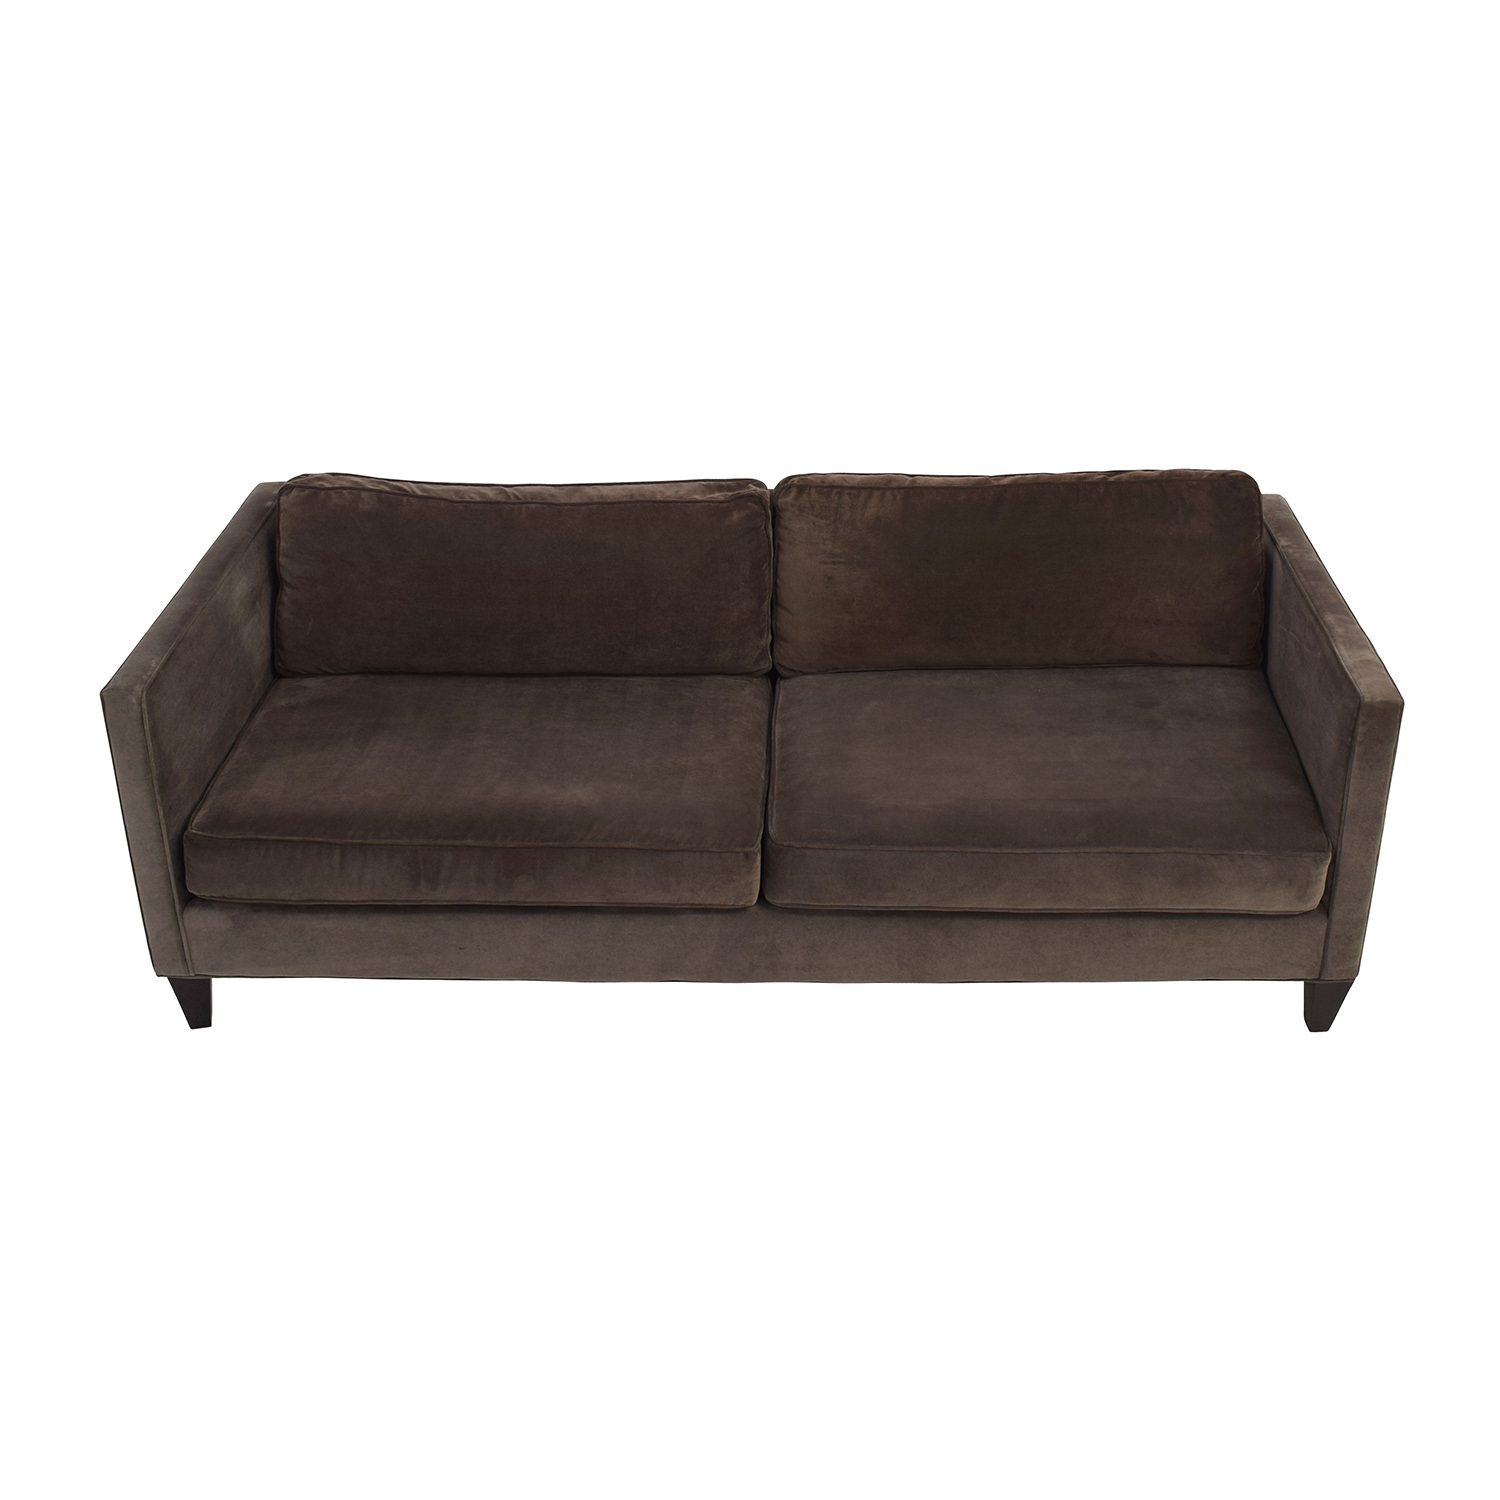 ... Rowe Furniture Rowe Furniture Mitchell Brown Sofa Used ...